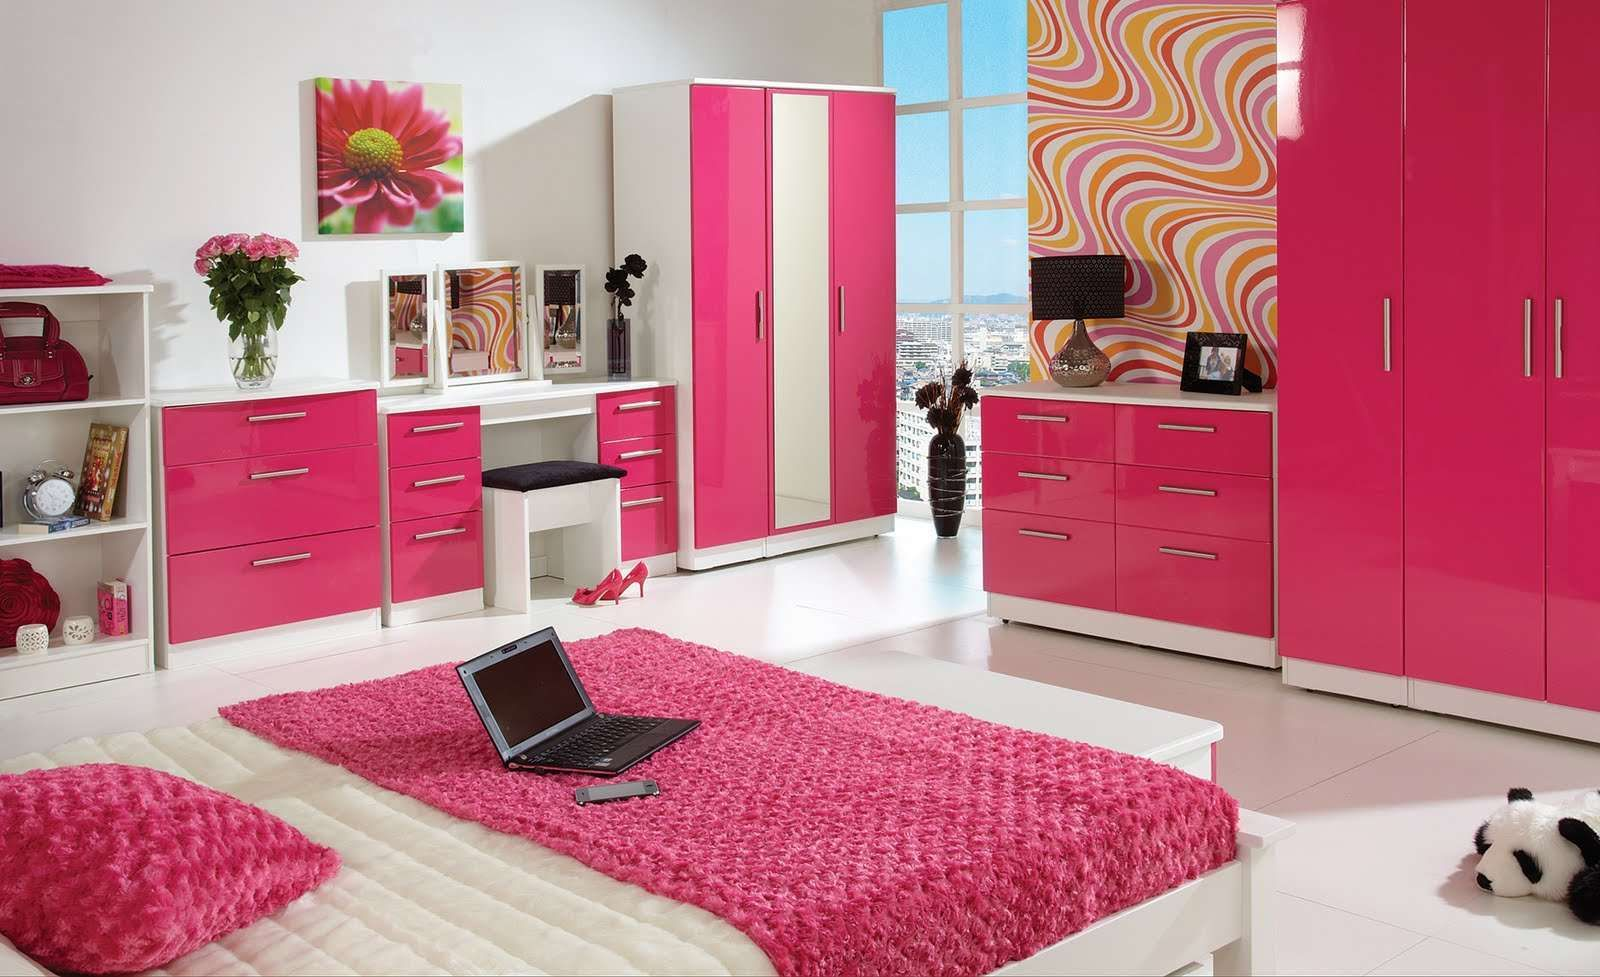 Charming Bedroom Furniture Sets   Teenage Girls: Download Best Latest Bedroom  Furniture Sets   Teenage Girls Wallpapers For Your PC Desktop Background  U0026mobile Phone.